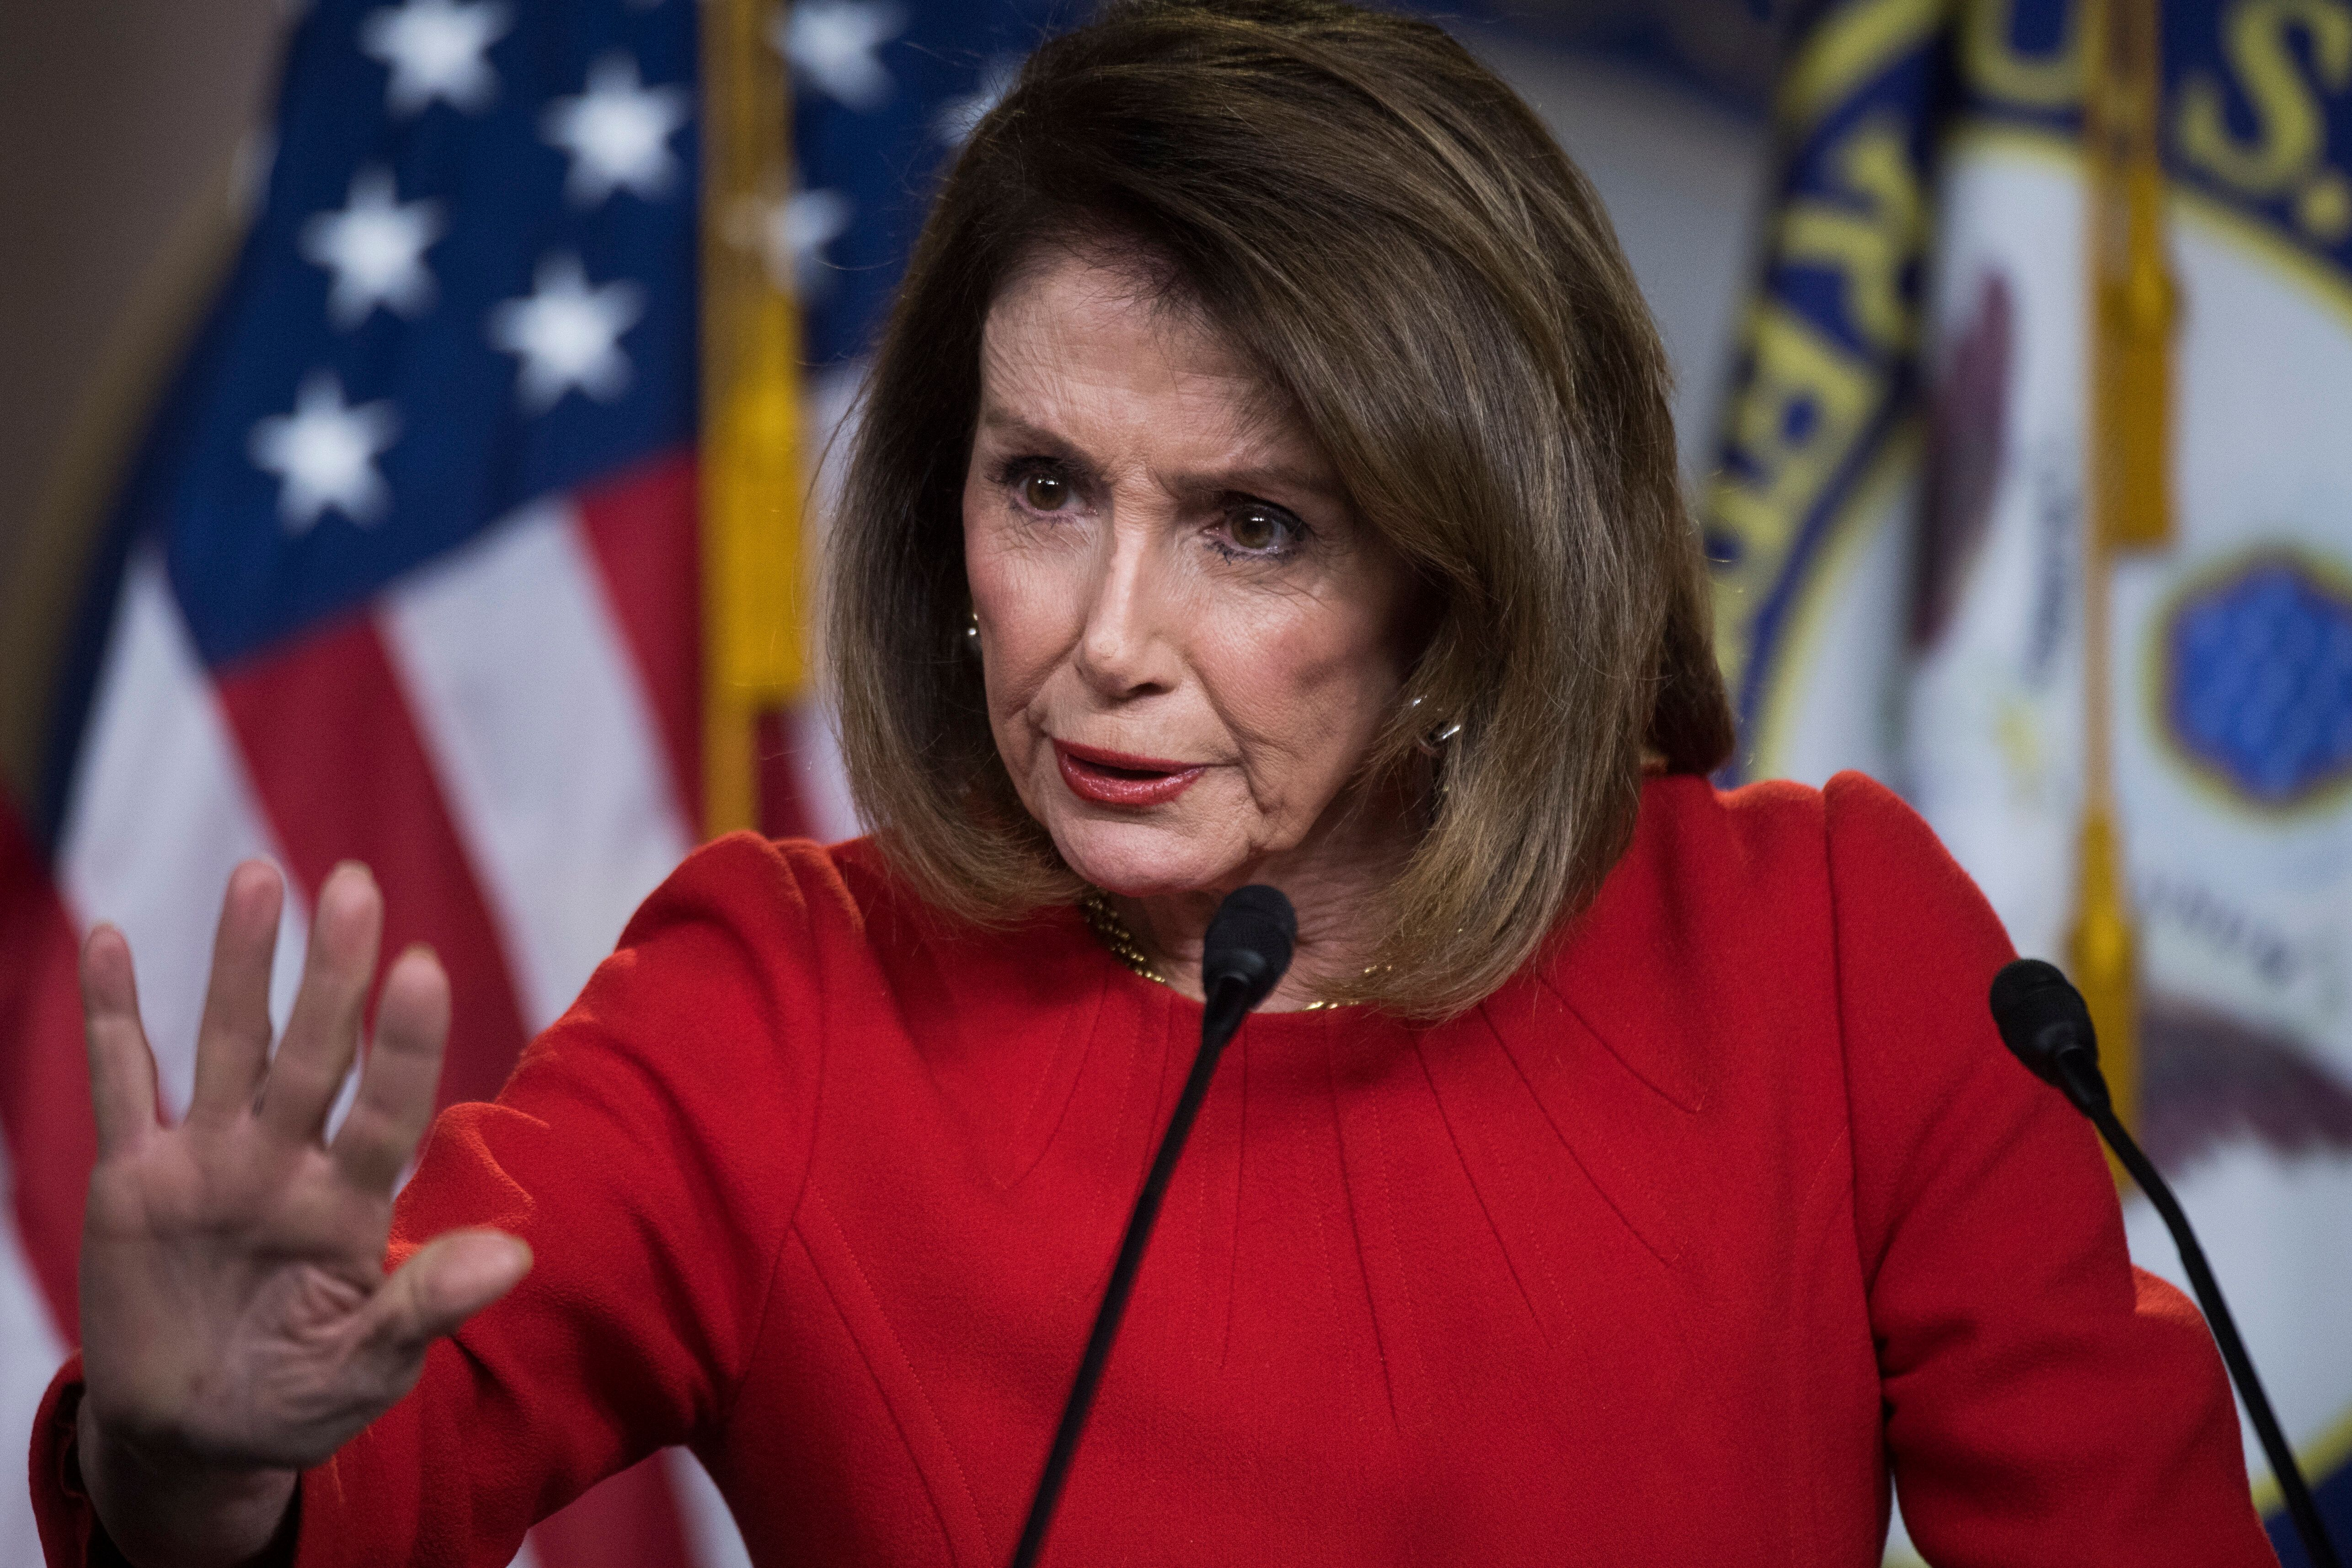 UNITED STATES - APRIL 4: Speaker Nancy Pelosi, D-Calif., conducts her weekly news conference in the Capitol Visitor Center on Wednesday, April 4, 2019. (Photo By Tom Williams/CQ Roll Call)